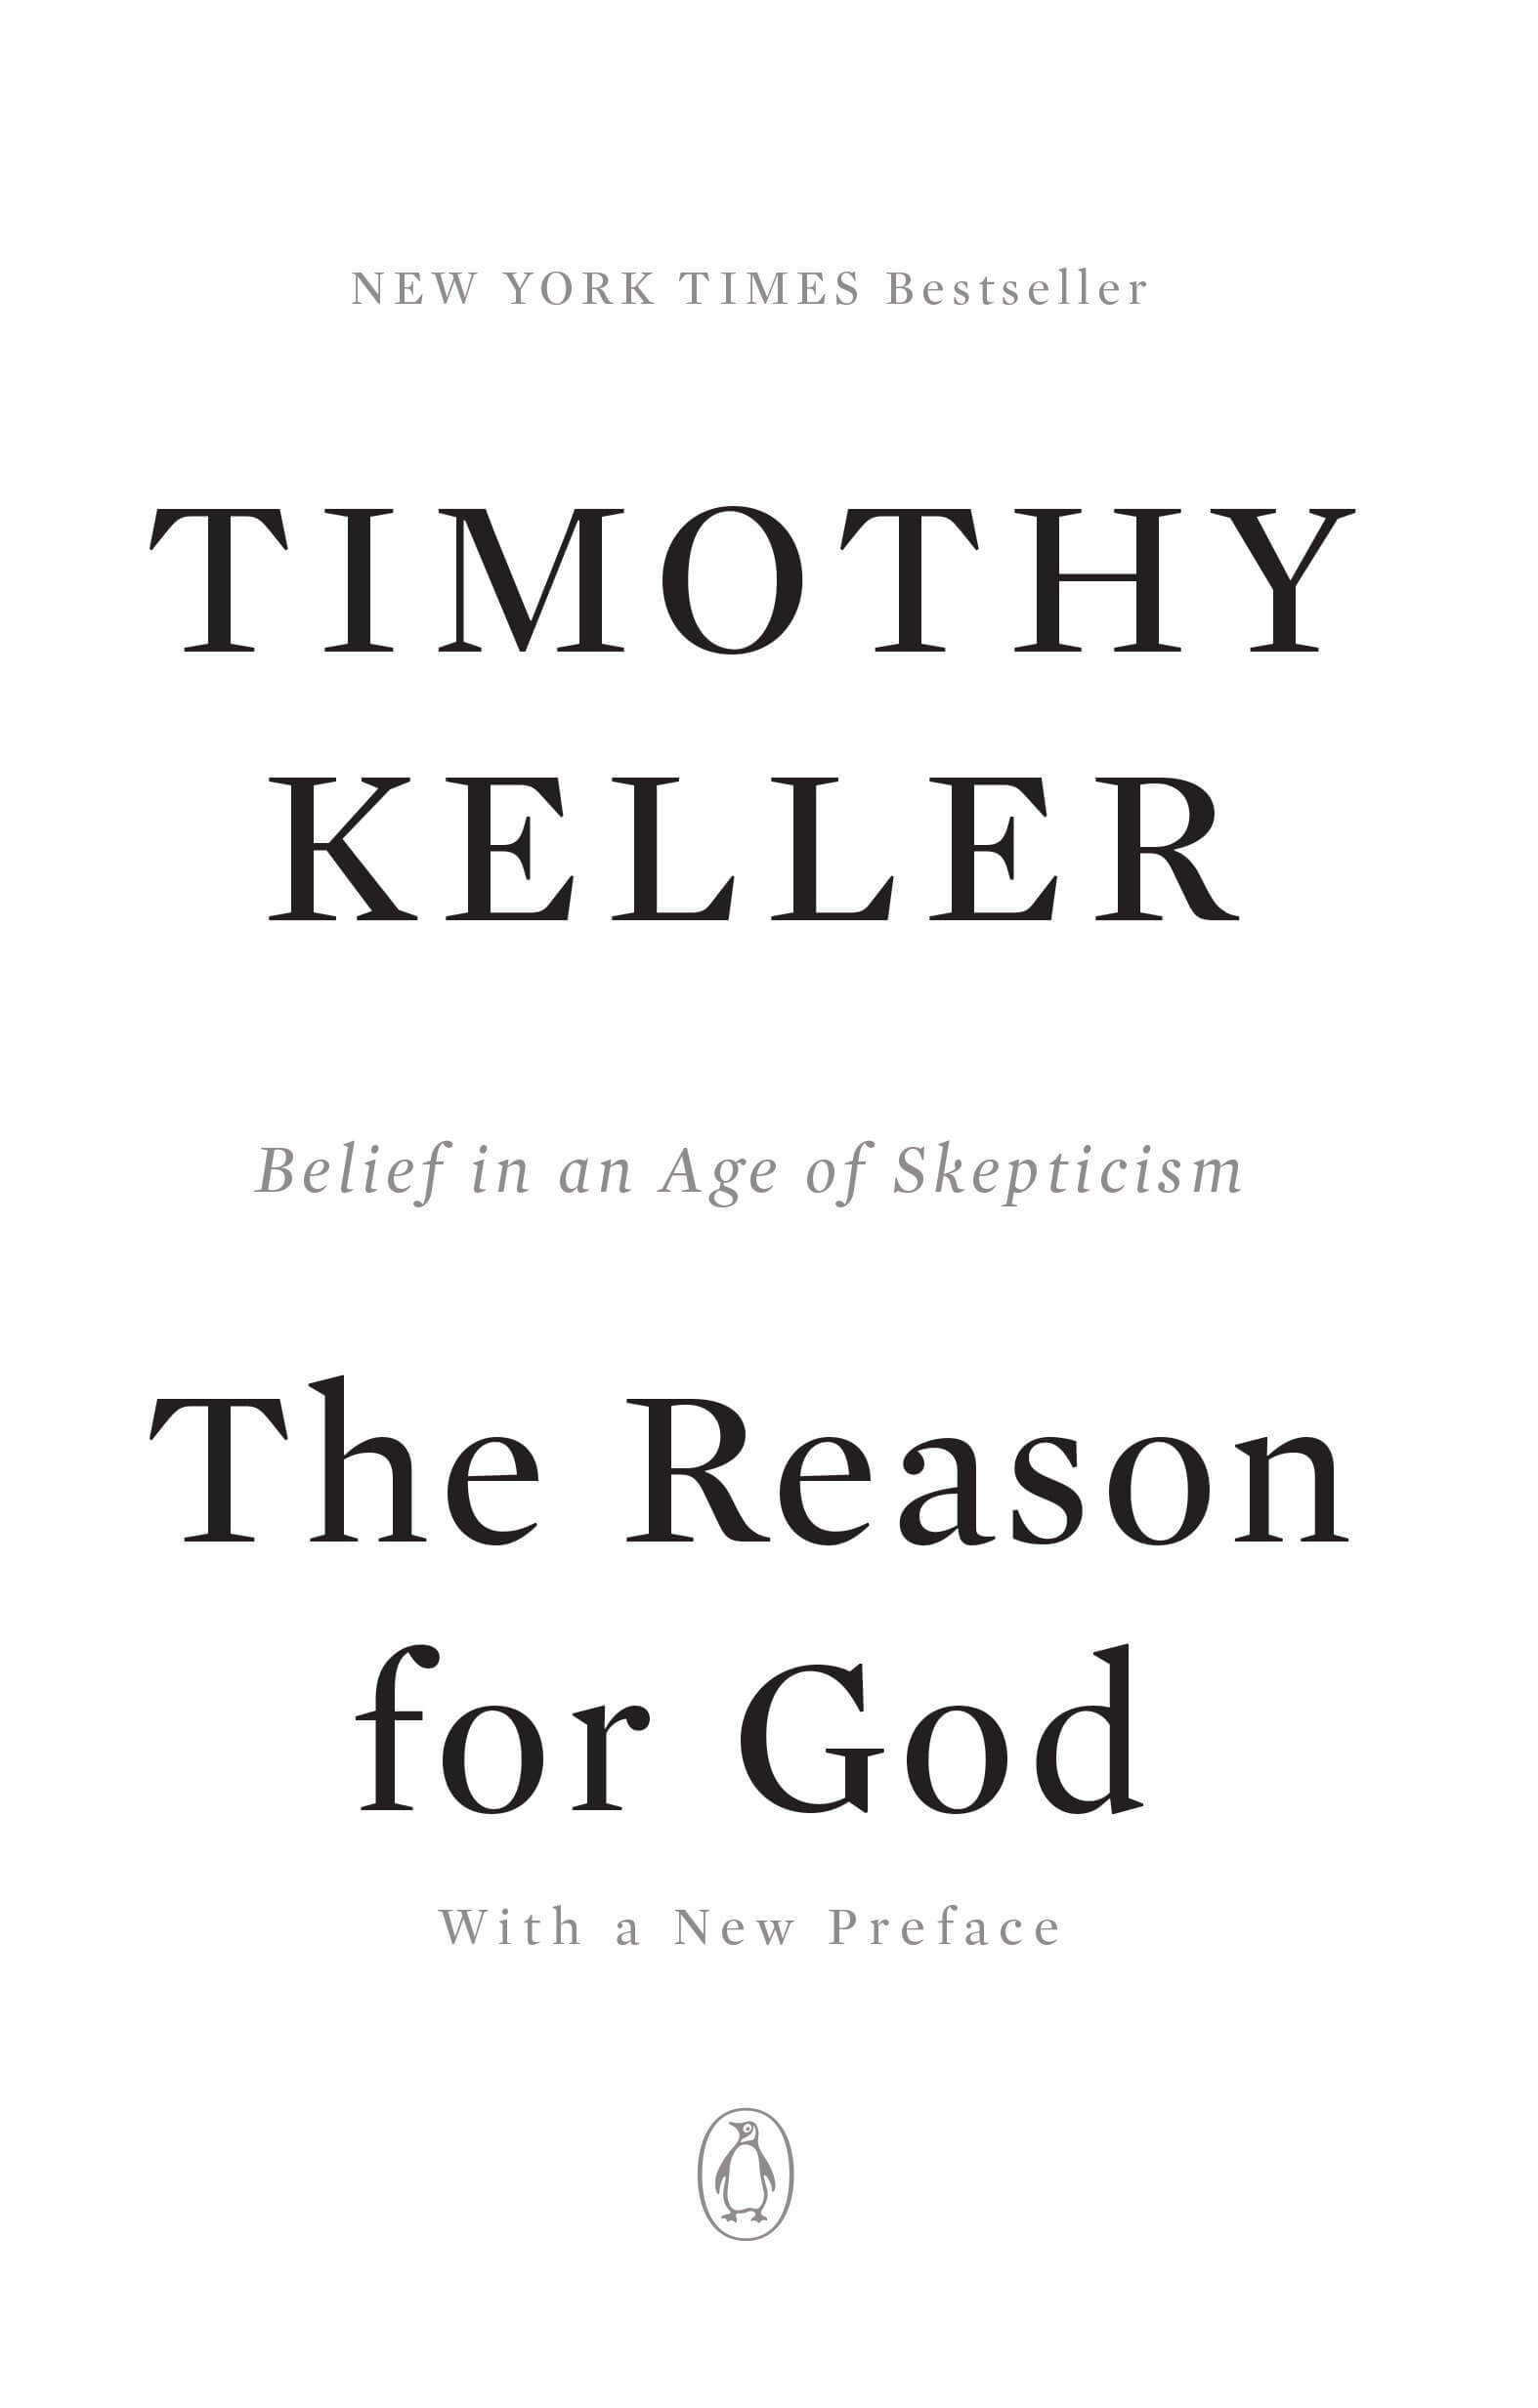 THE-REASON-FOR-GOD-BELIEF-IN-AN-AGE-OF-SKEPTICISM-BY-TIMOTHY-KELLER